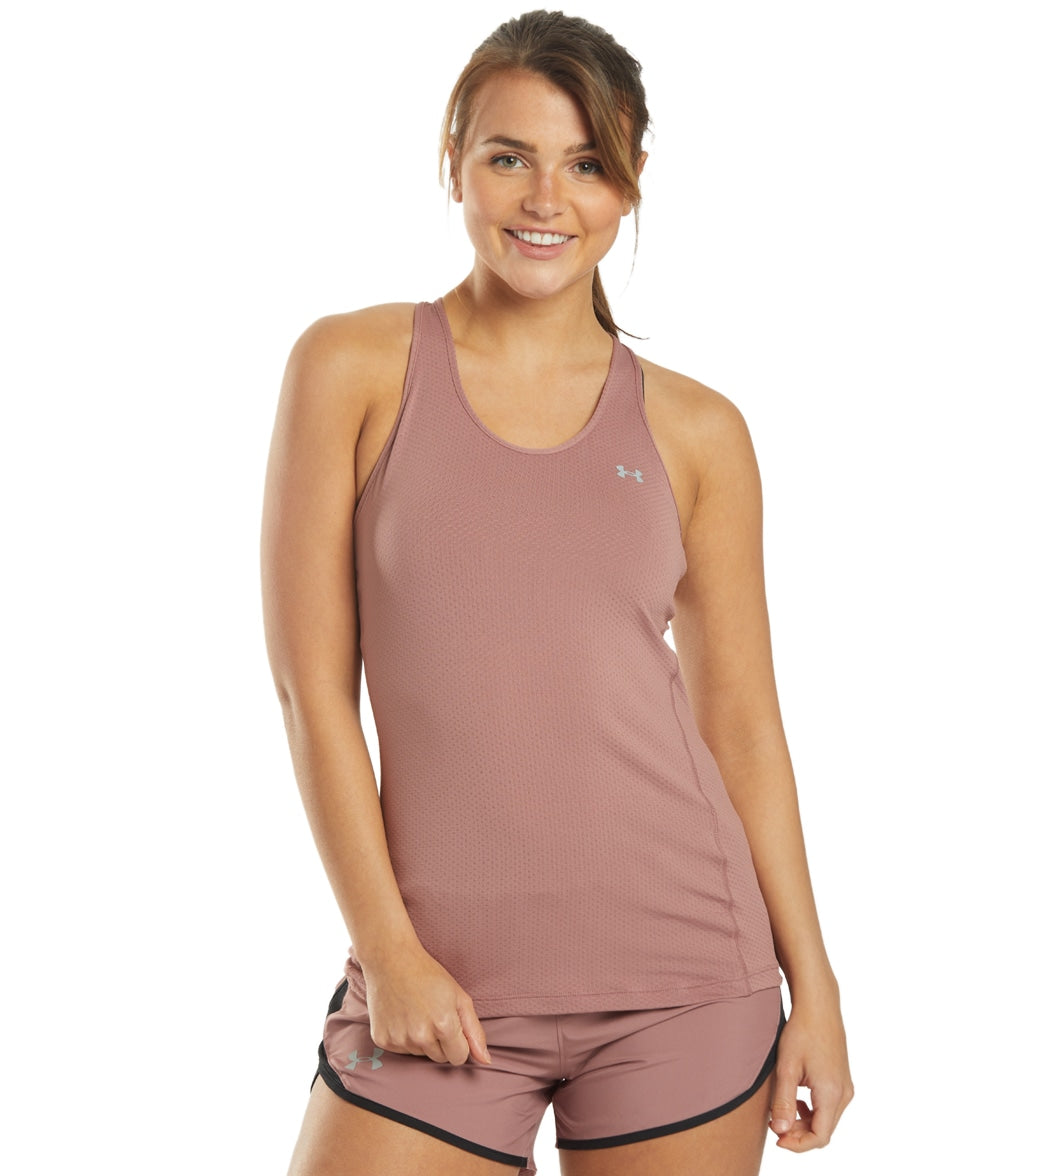 Feel comfortable while you exercise in the Under Armour Women\\\'s UA HG Armour Racer Tank. FeaturesSuper-soft pinhole mesh delivers superior breathability without sacrificing coverage Material wicks sweat & dries really fast 4-way stretch construction moves better in every direction Anti-odor technology prevents the growth of odor-causing microbes Rolled forward flatlock seams deliver a comfortable, chafe-free fit Classic racer backDetailsFabric: 94% Polyester, 6% ElastaneFit: FittedCountry of Ori